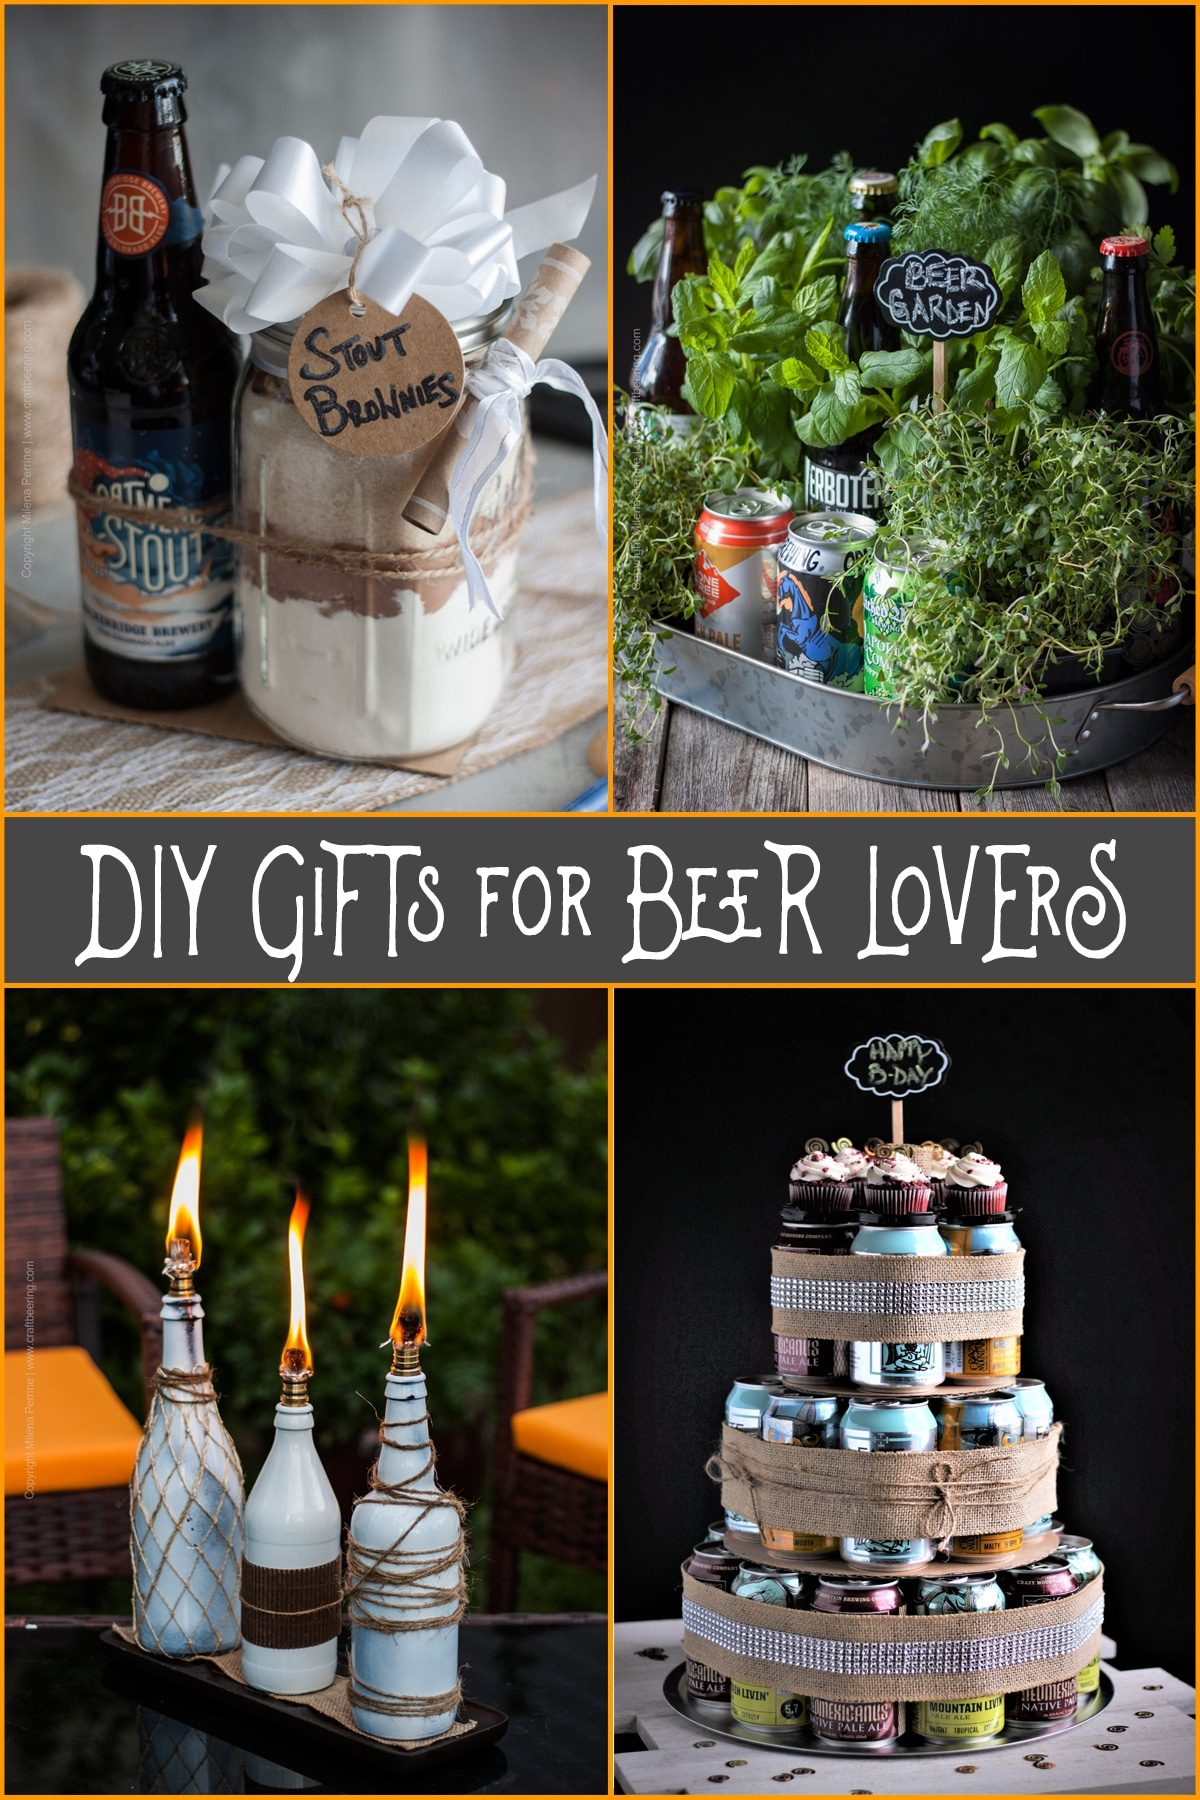 DIY Gifts for Beer Lovers | Beer themed gifts you can make that they will love! Beer cake, beer bottle tiki torch, beer brownie mix, beer garden PLUS MORE! #beergift #beergiftidea #fathersdaygift #birthdaygift